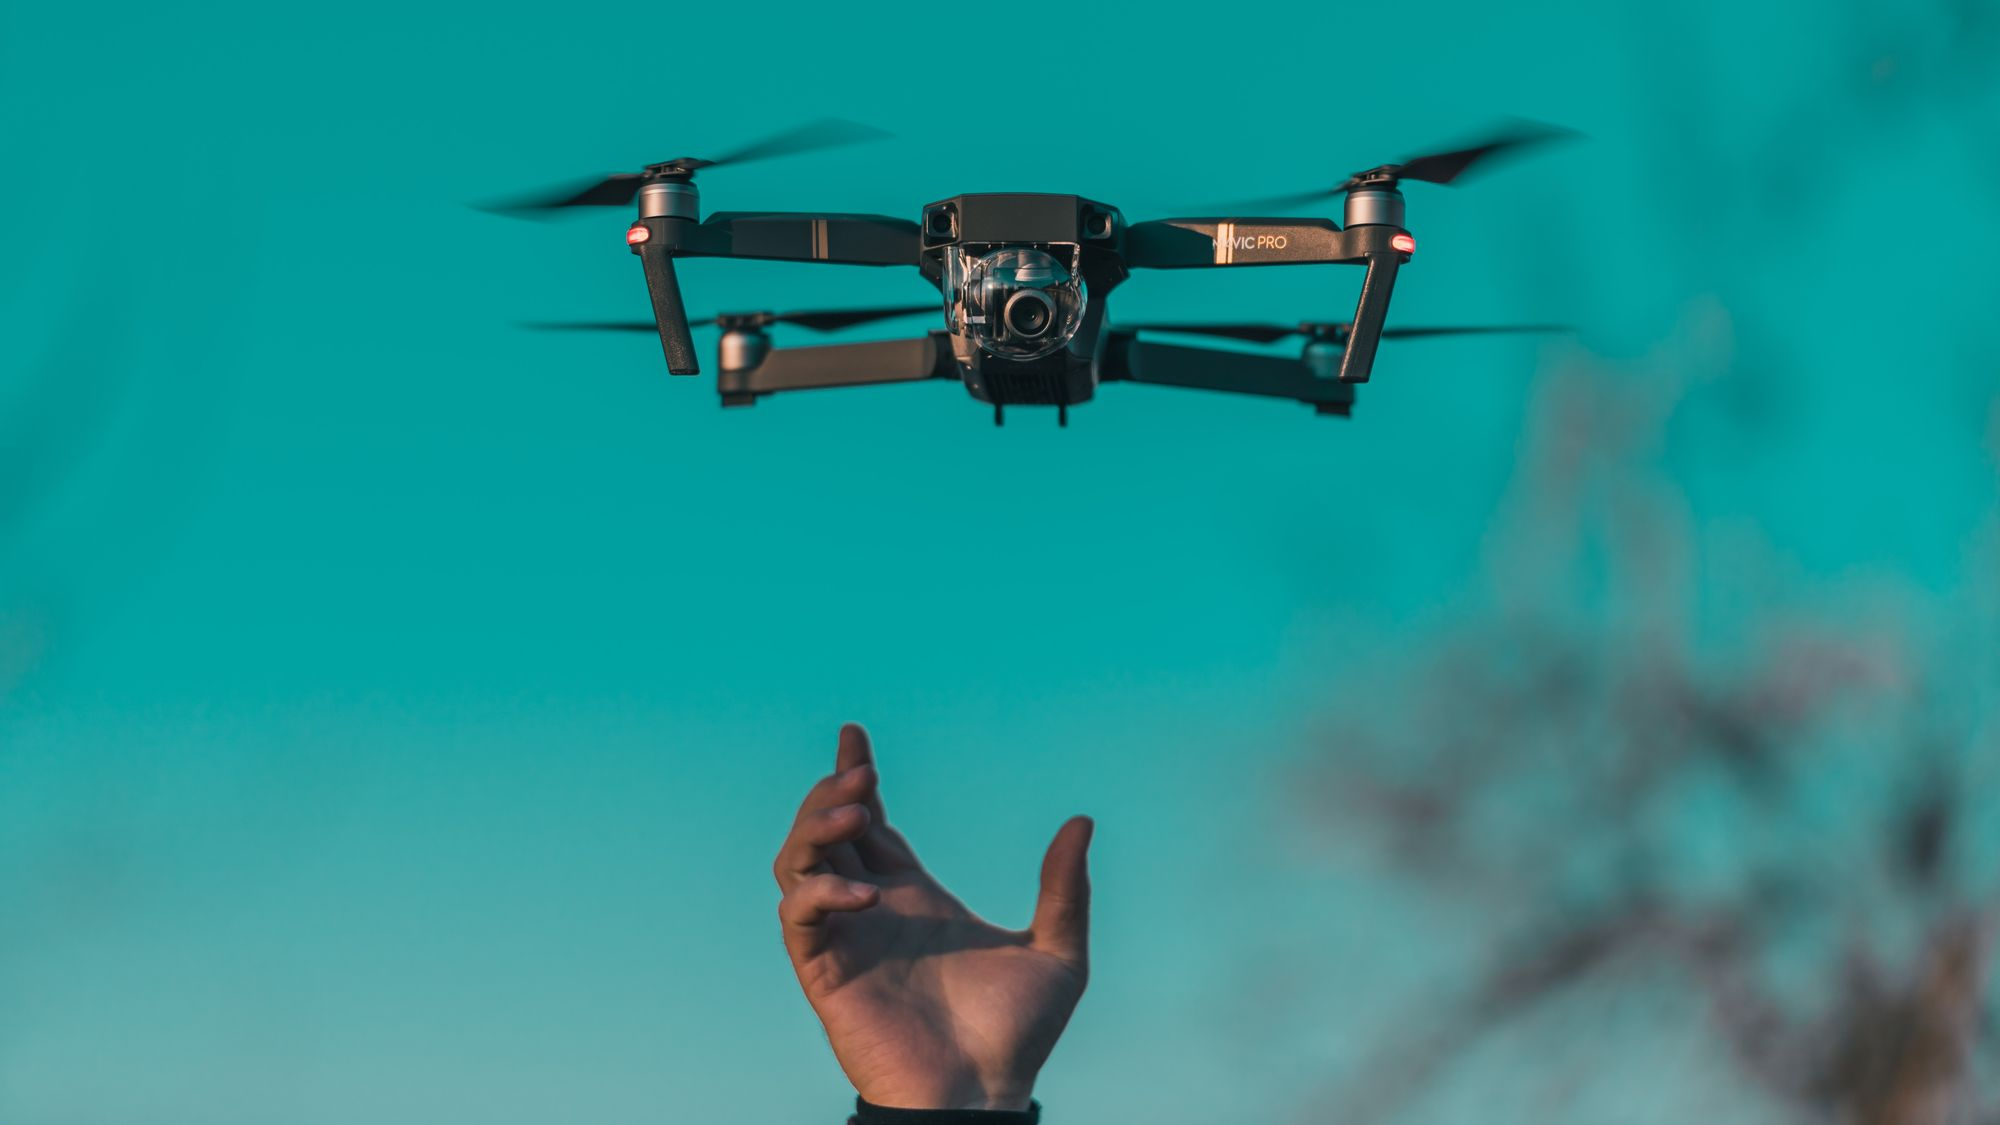 Consider this before you start flying drone